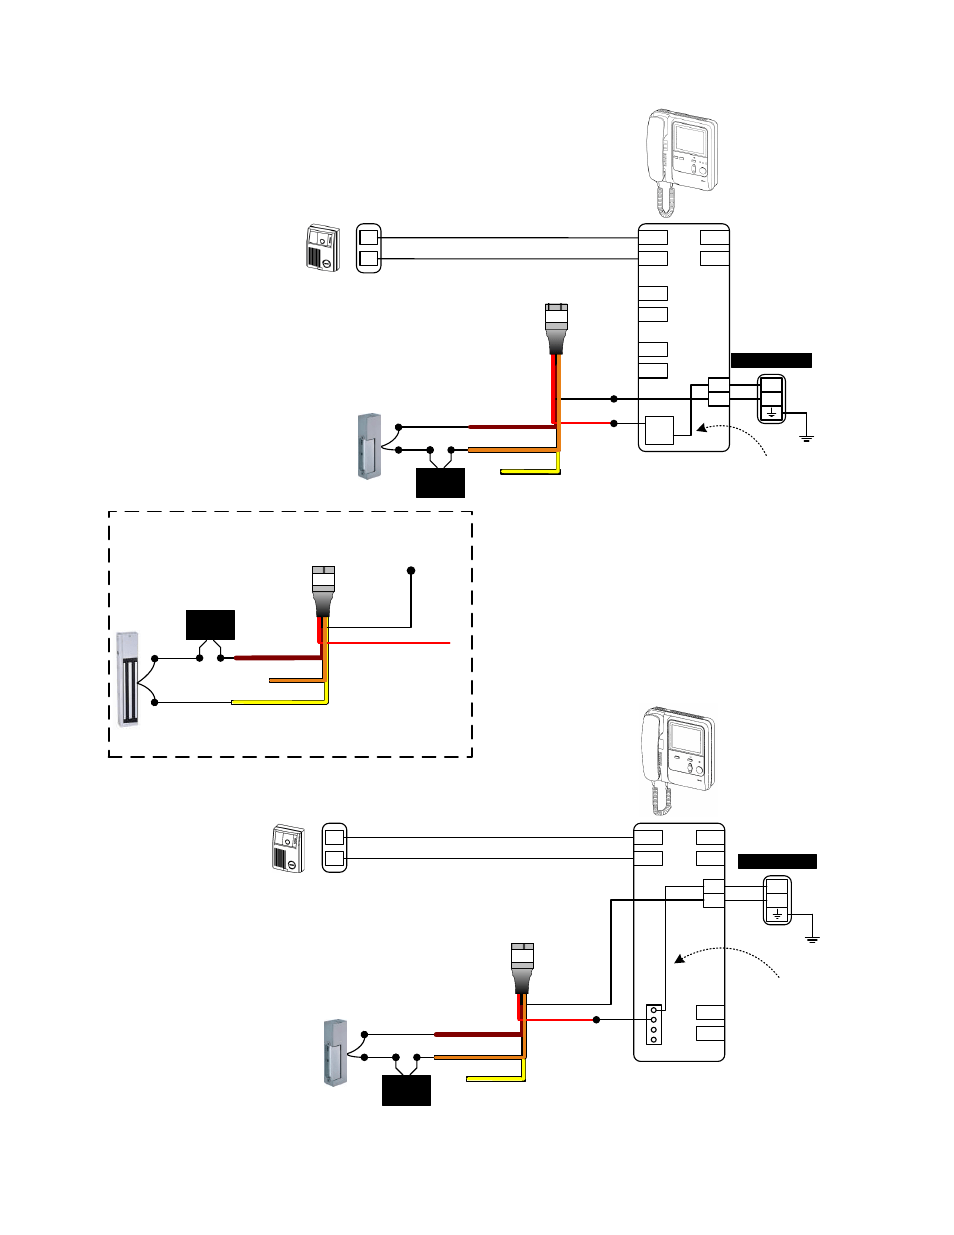 aiphone door release relay module ry 24l page2?resize\=665%2C861 aiphone lef 3 wiring diagram on aiphone download wirning diagrams pacific electronics af1000 wiring diagram at panicattacktreatment.co